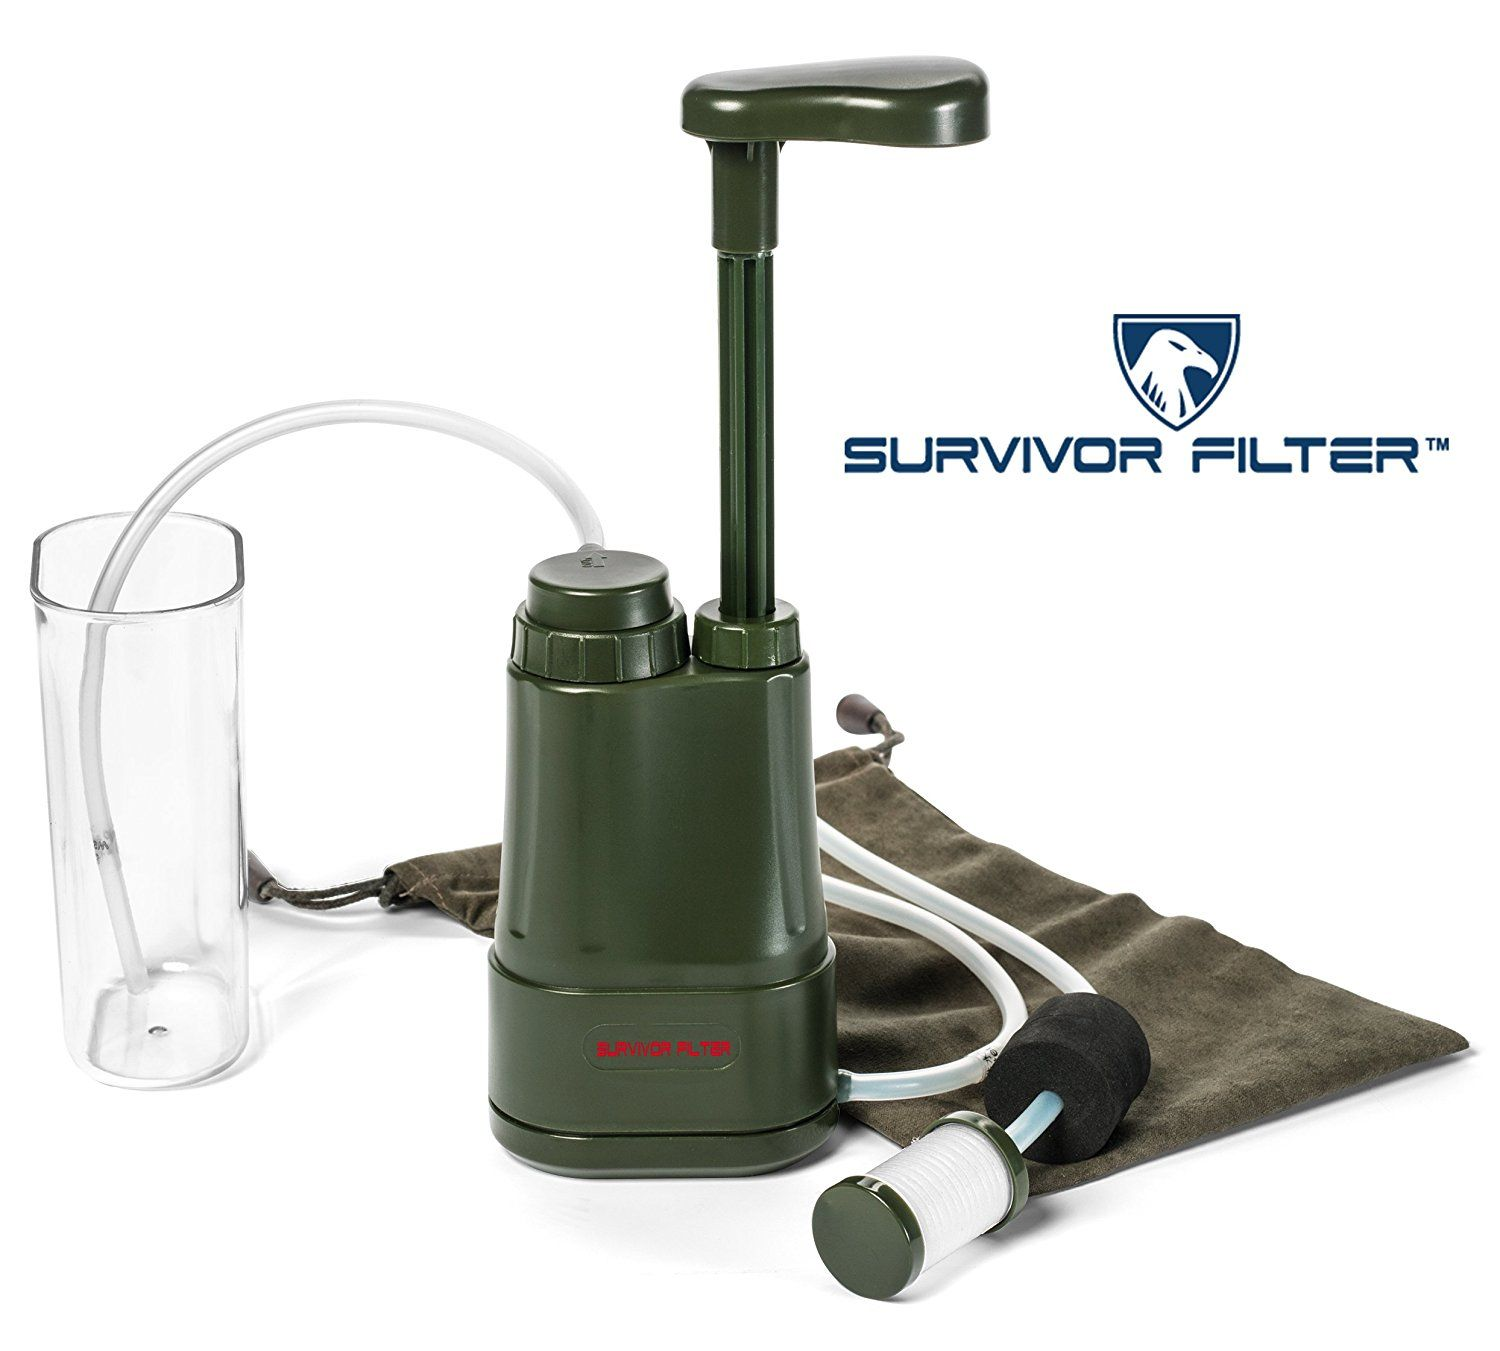 SURVIVOR FILTER PRO Virus and Heavy Metal Tested 0.01 Micron Water Filter